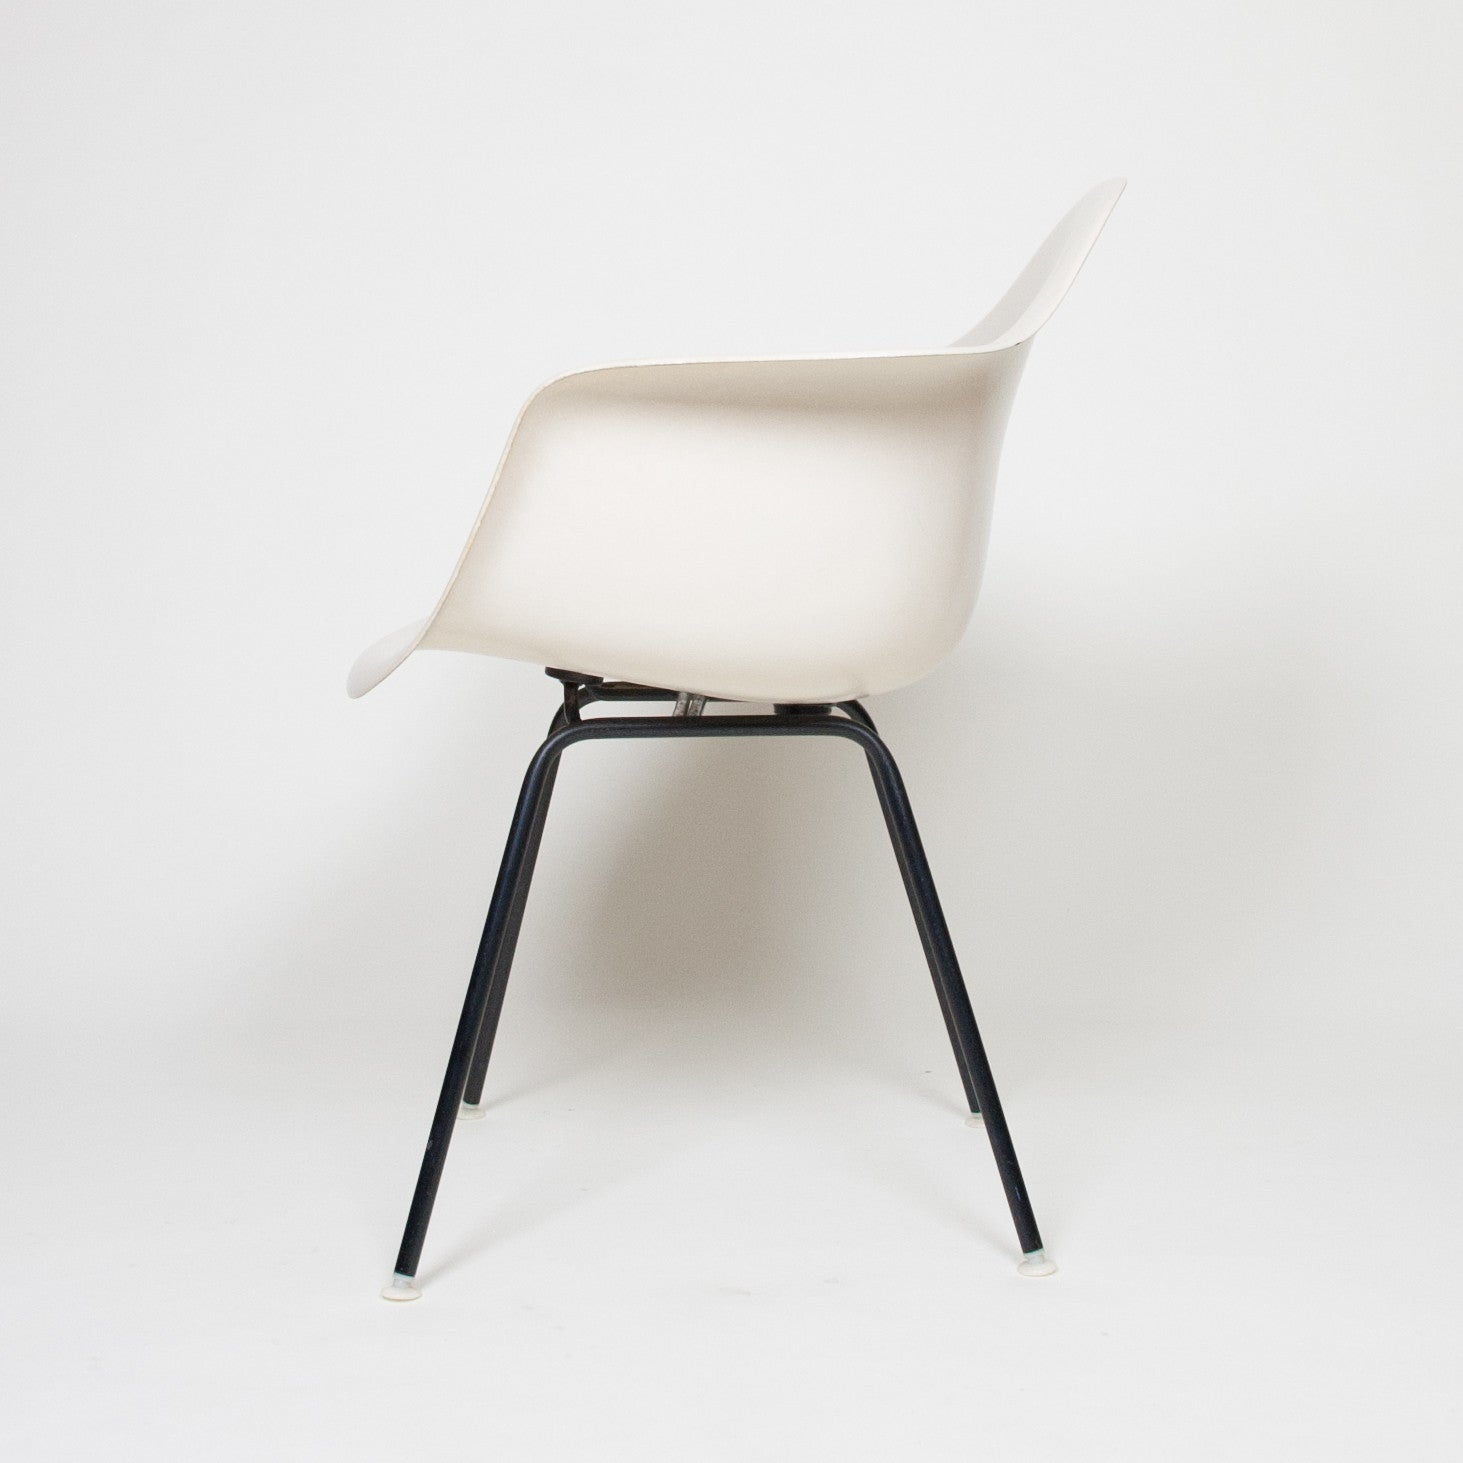 SOLD Eames Herman Miller Ivory Fiberglass Shell Chair Arm Shell Mint Condition